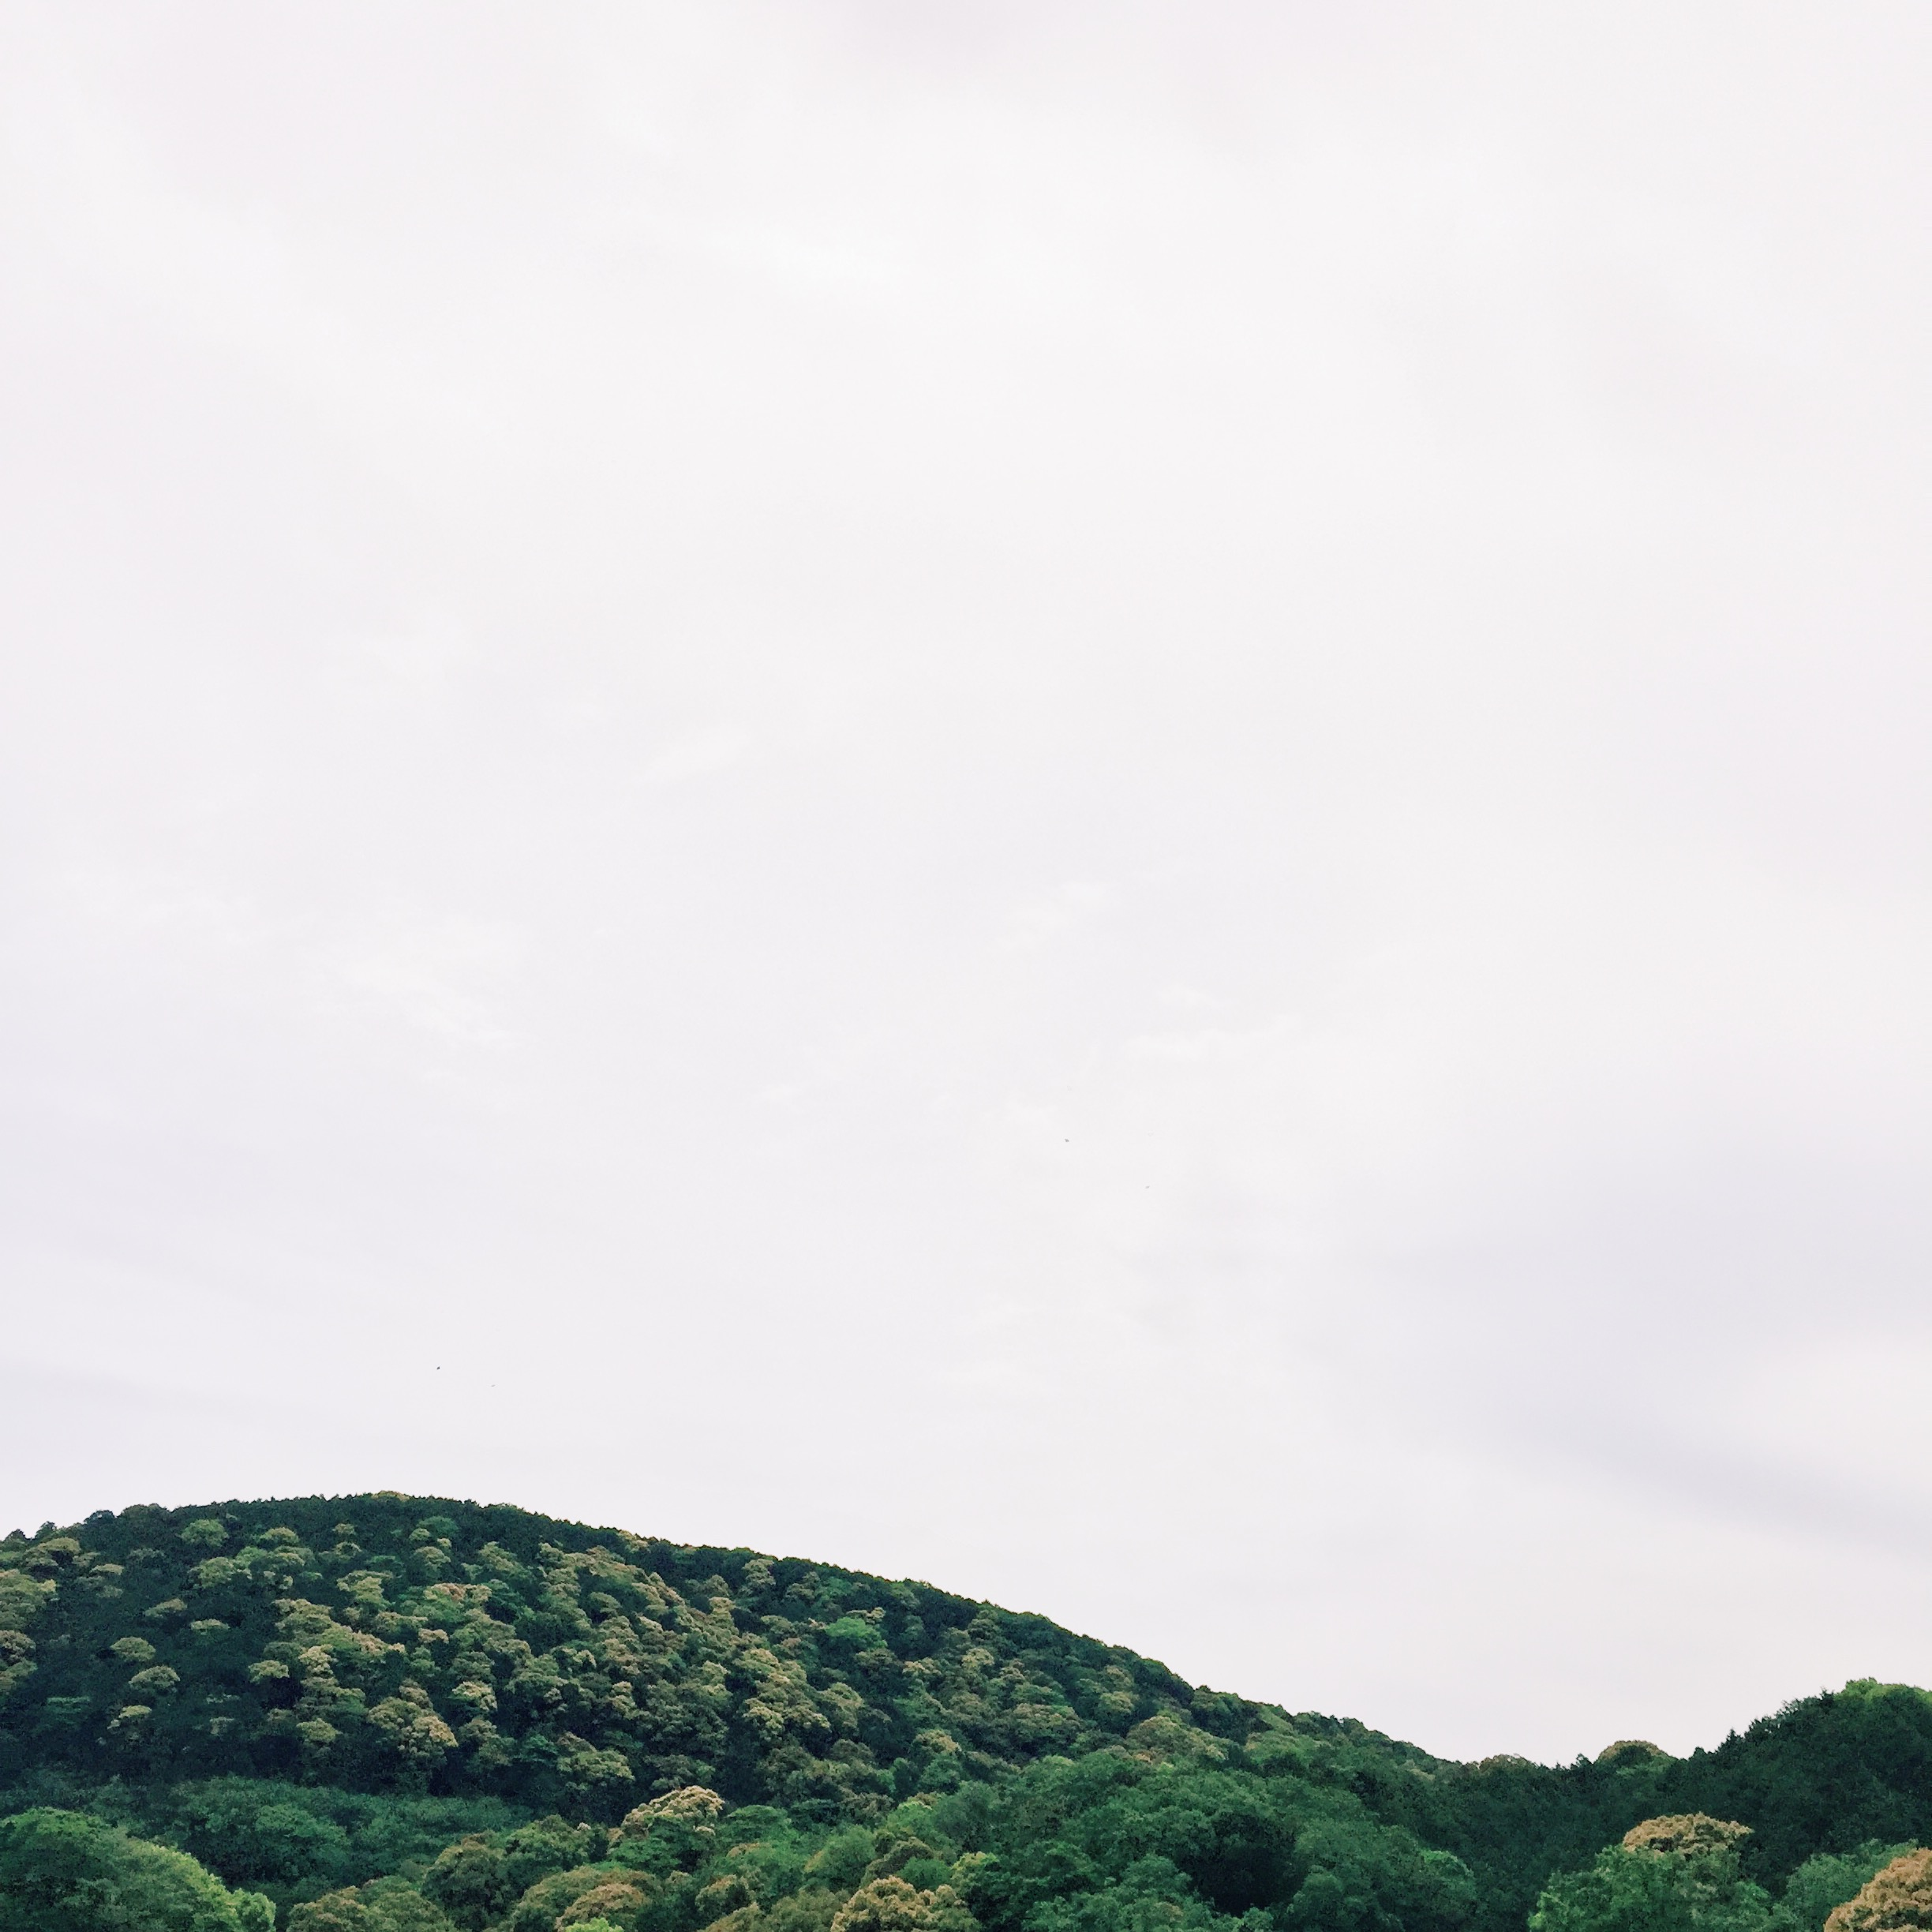 Processed with VSCO with k1 preset